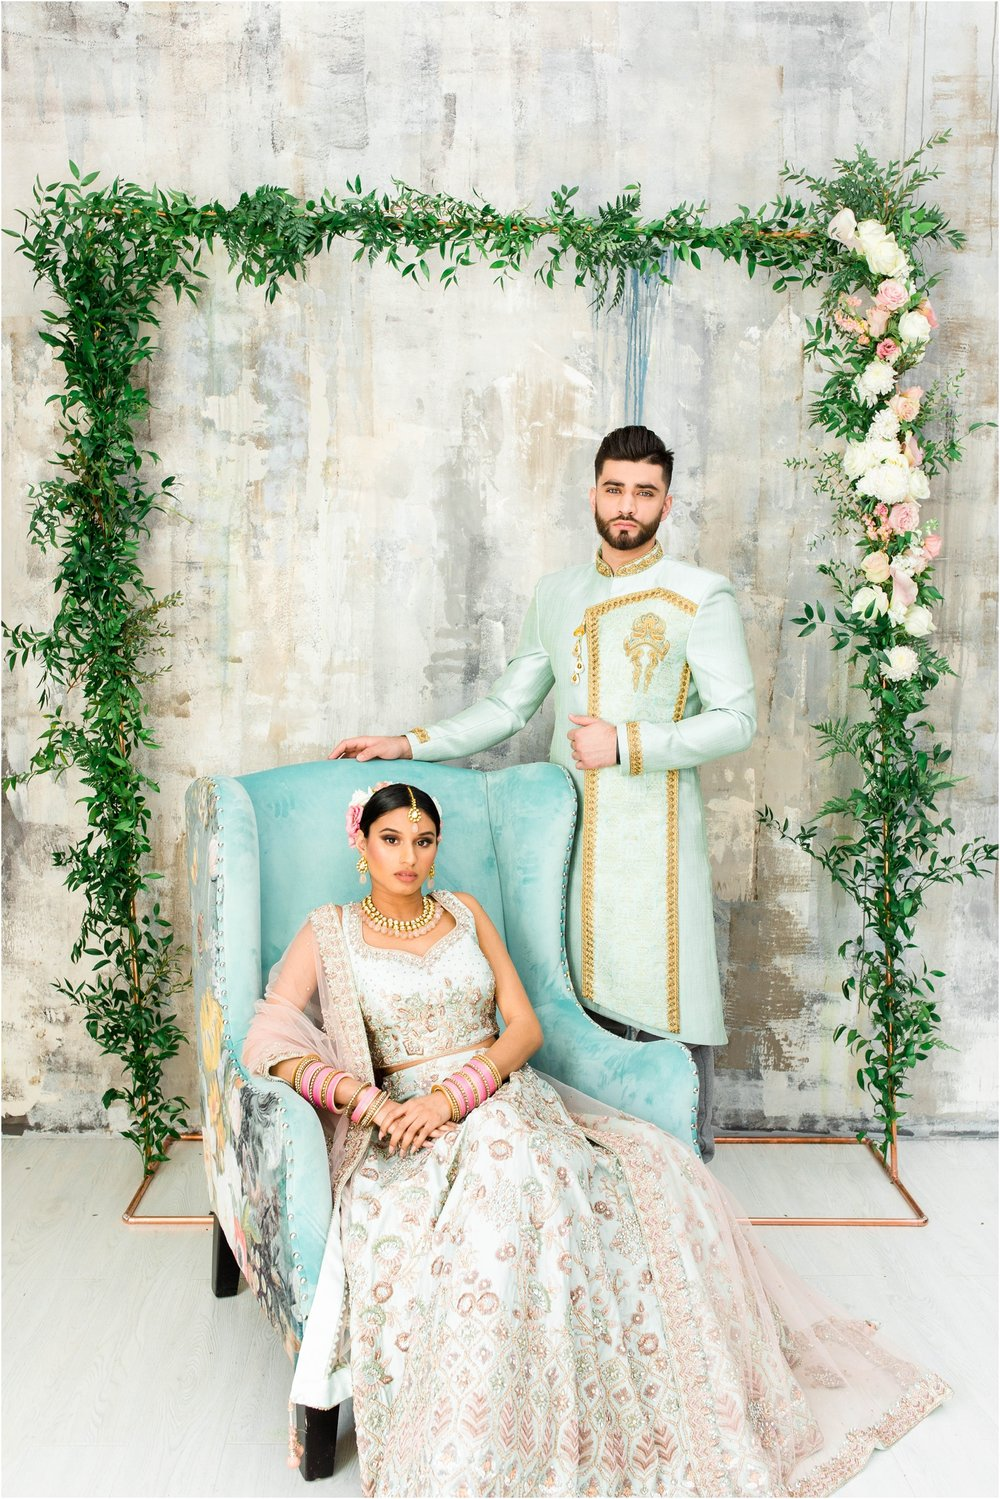 Mint-Room-Studios-Rustic-Blush-Styled-Shoot-Toronto-Mississauga-Brampton-Scarborough-GTA-Pakistani-Indian-Wedding-Engagement-Photographer-Photography_0021.jpg